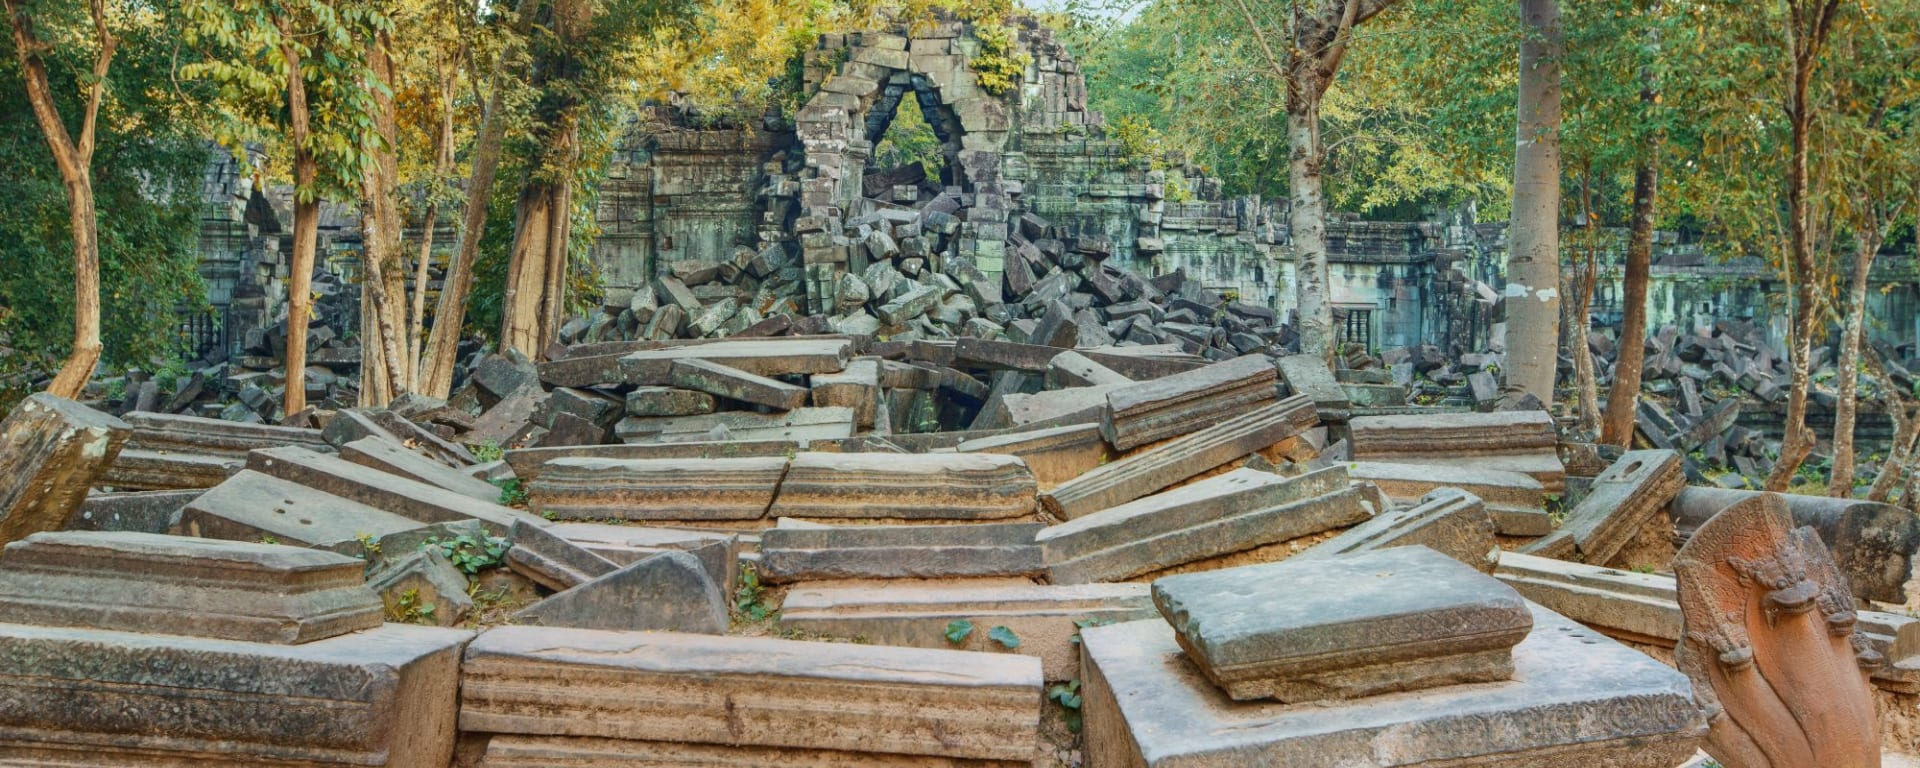 Spektakulärer Bergtempel Preah Vihear ab Siem Reap: Beng Mealea Temple ruines in the middle of jungle forest